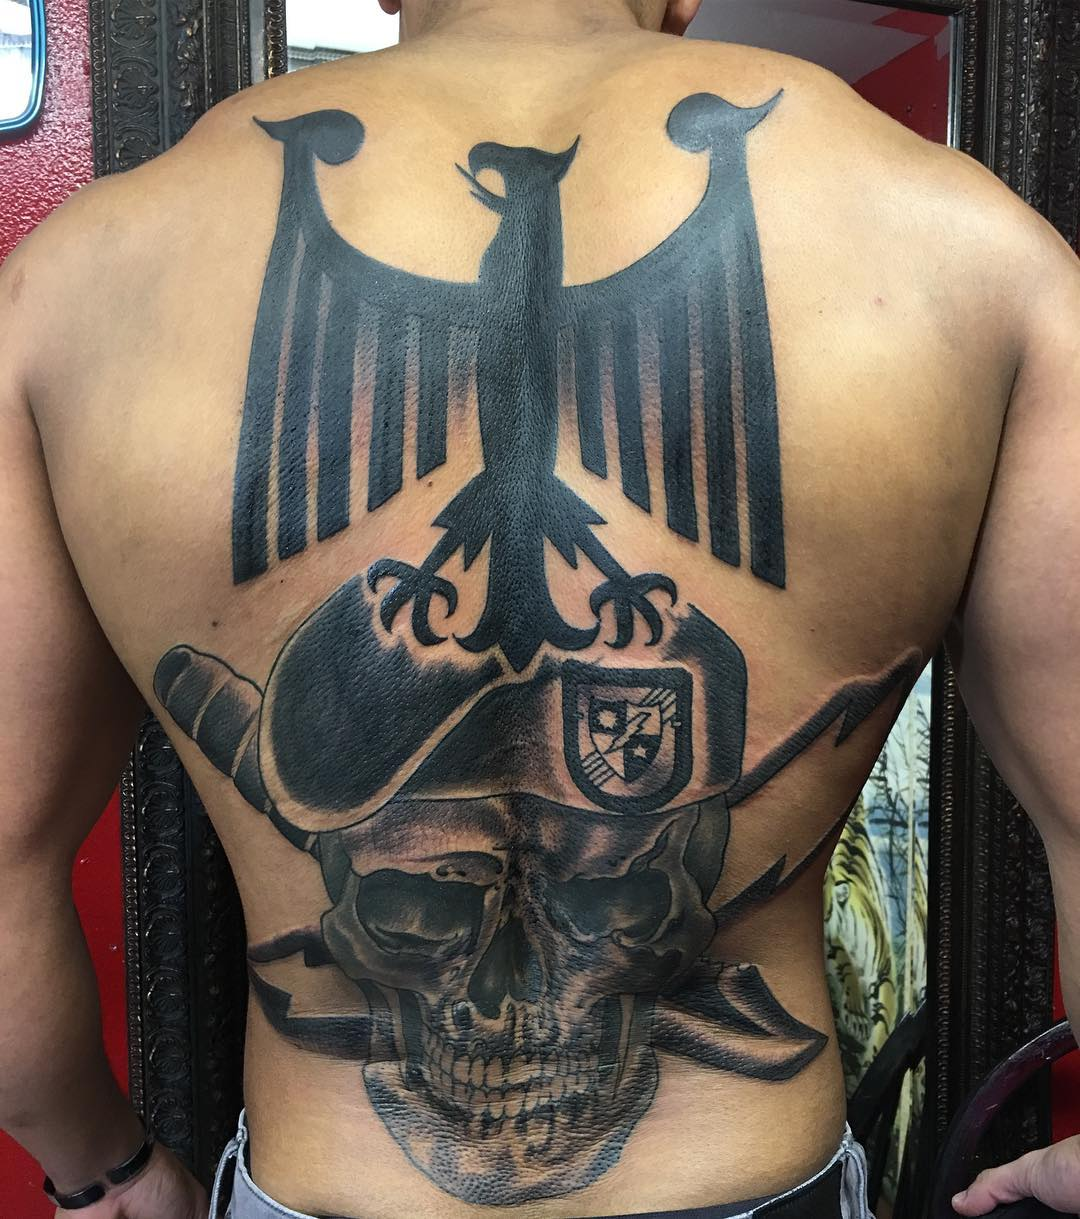 Tattoo Ideas Navy: 105+ Powerful Military Tattoos Designs & Meanings